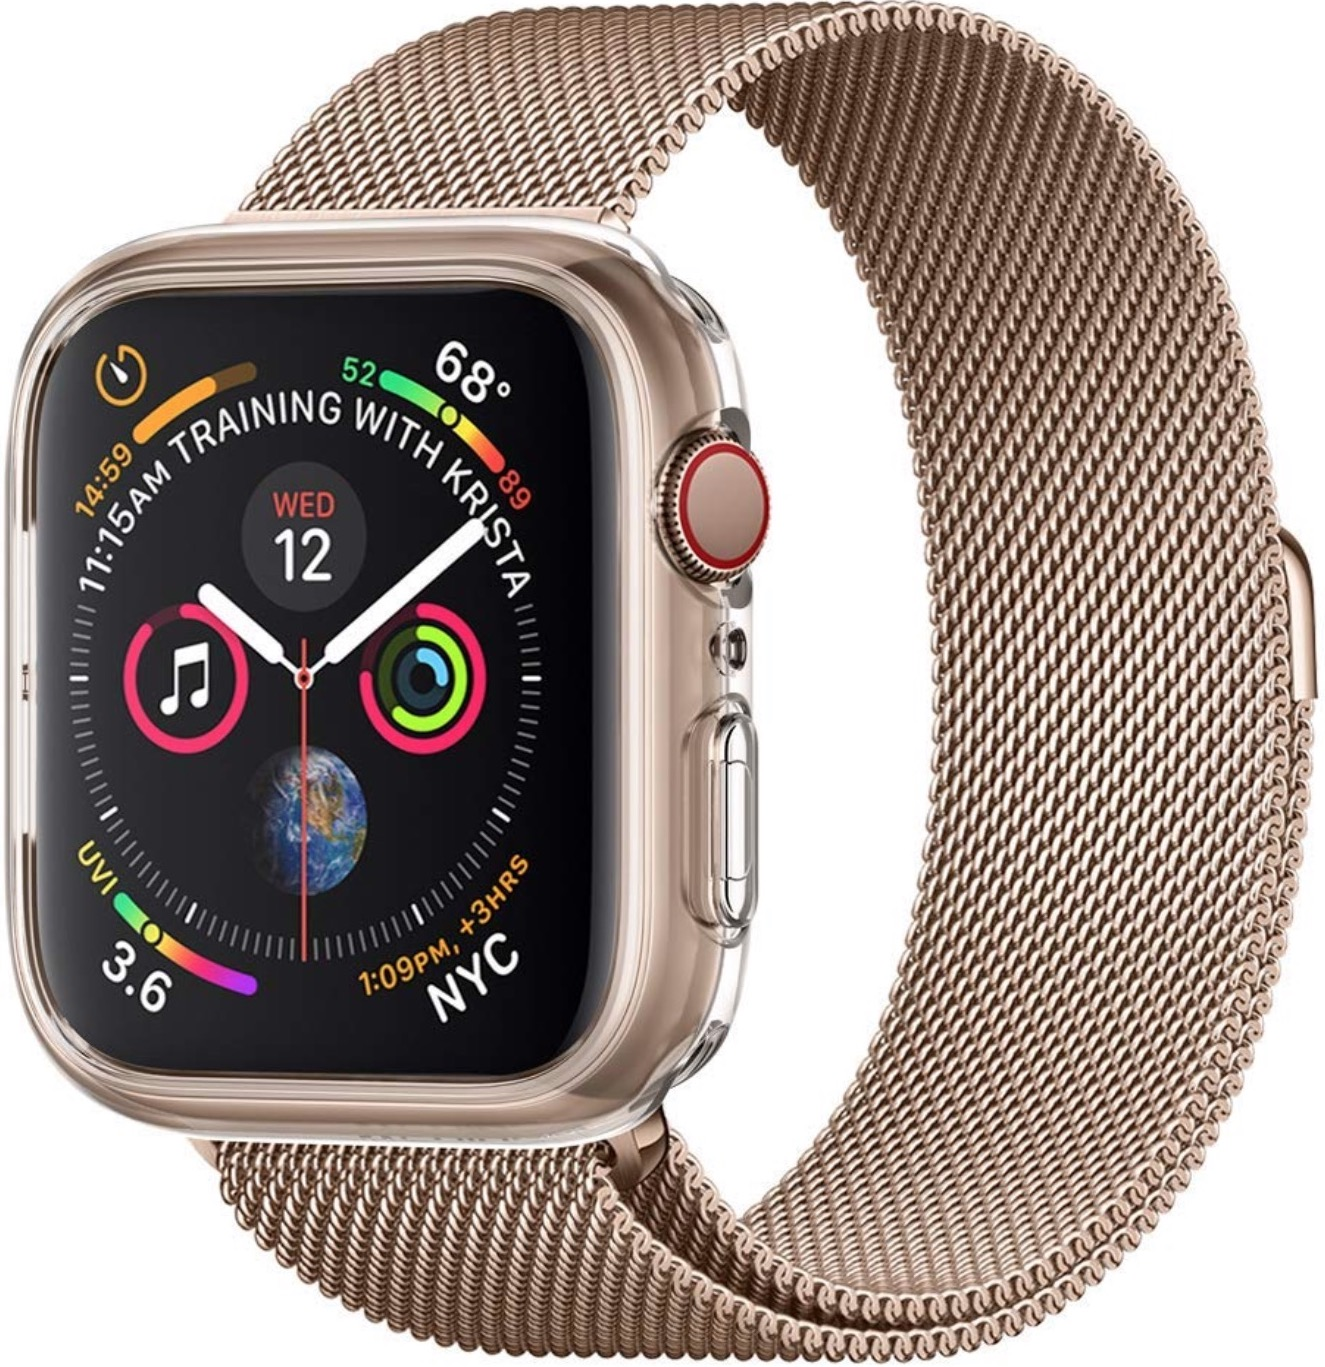 new concept 10e2d 77ade Best Cases for the Apple Watch Series 4 in 2019   TechnoBuffalo